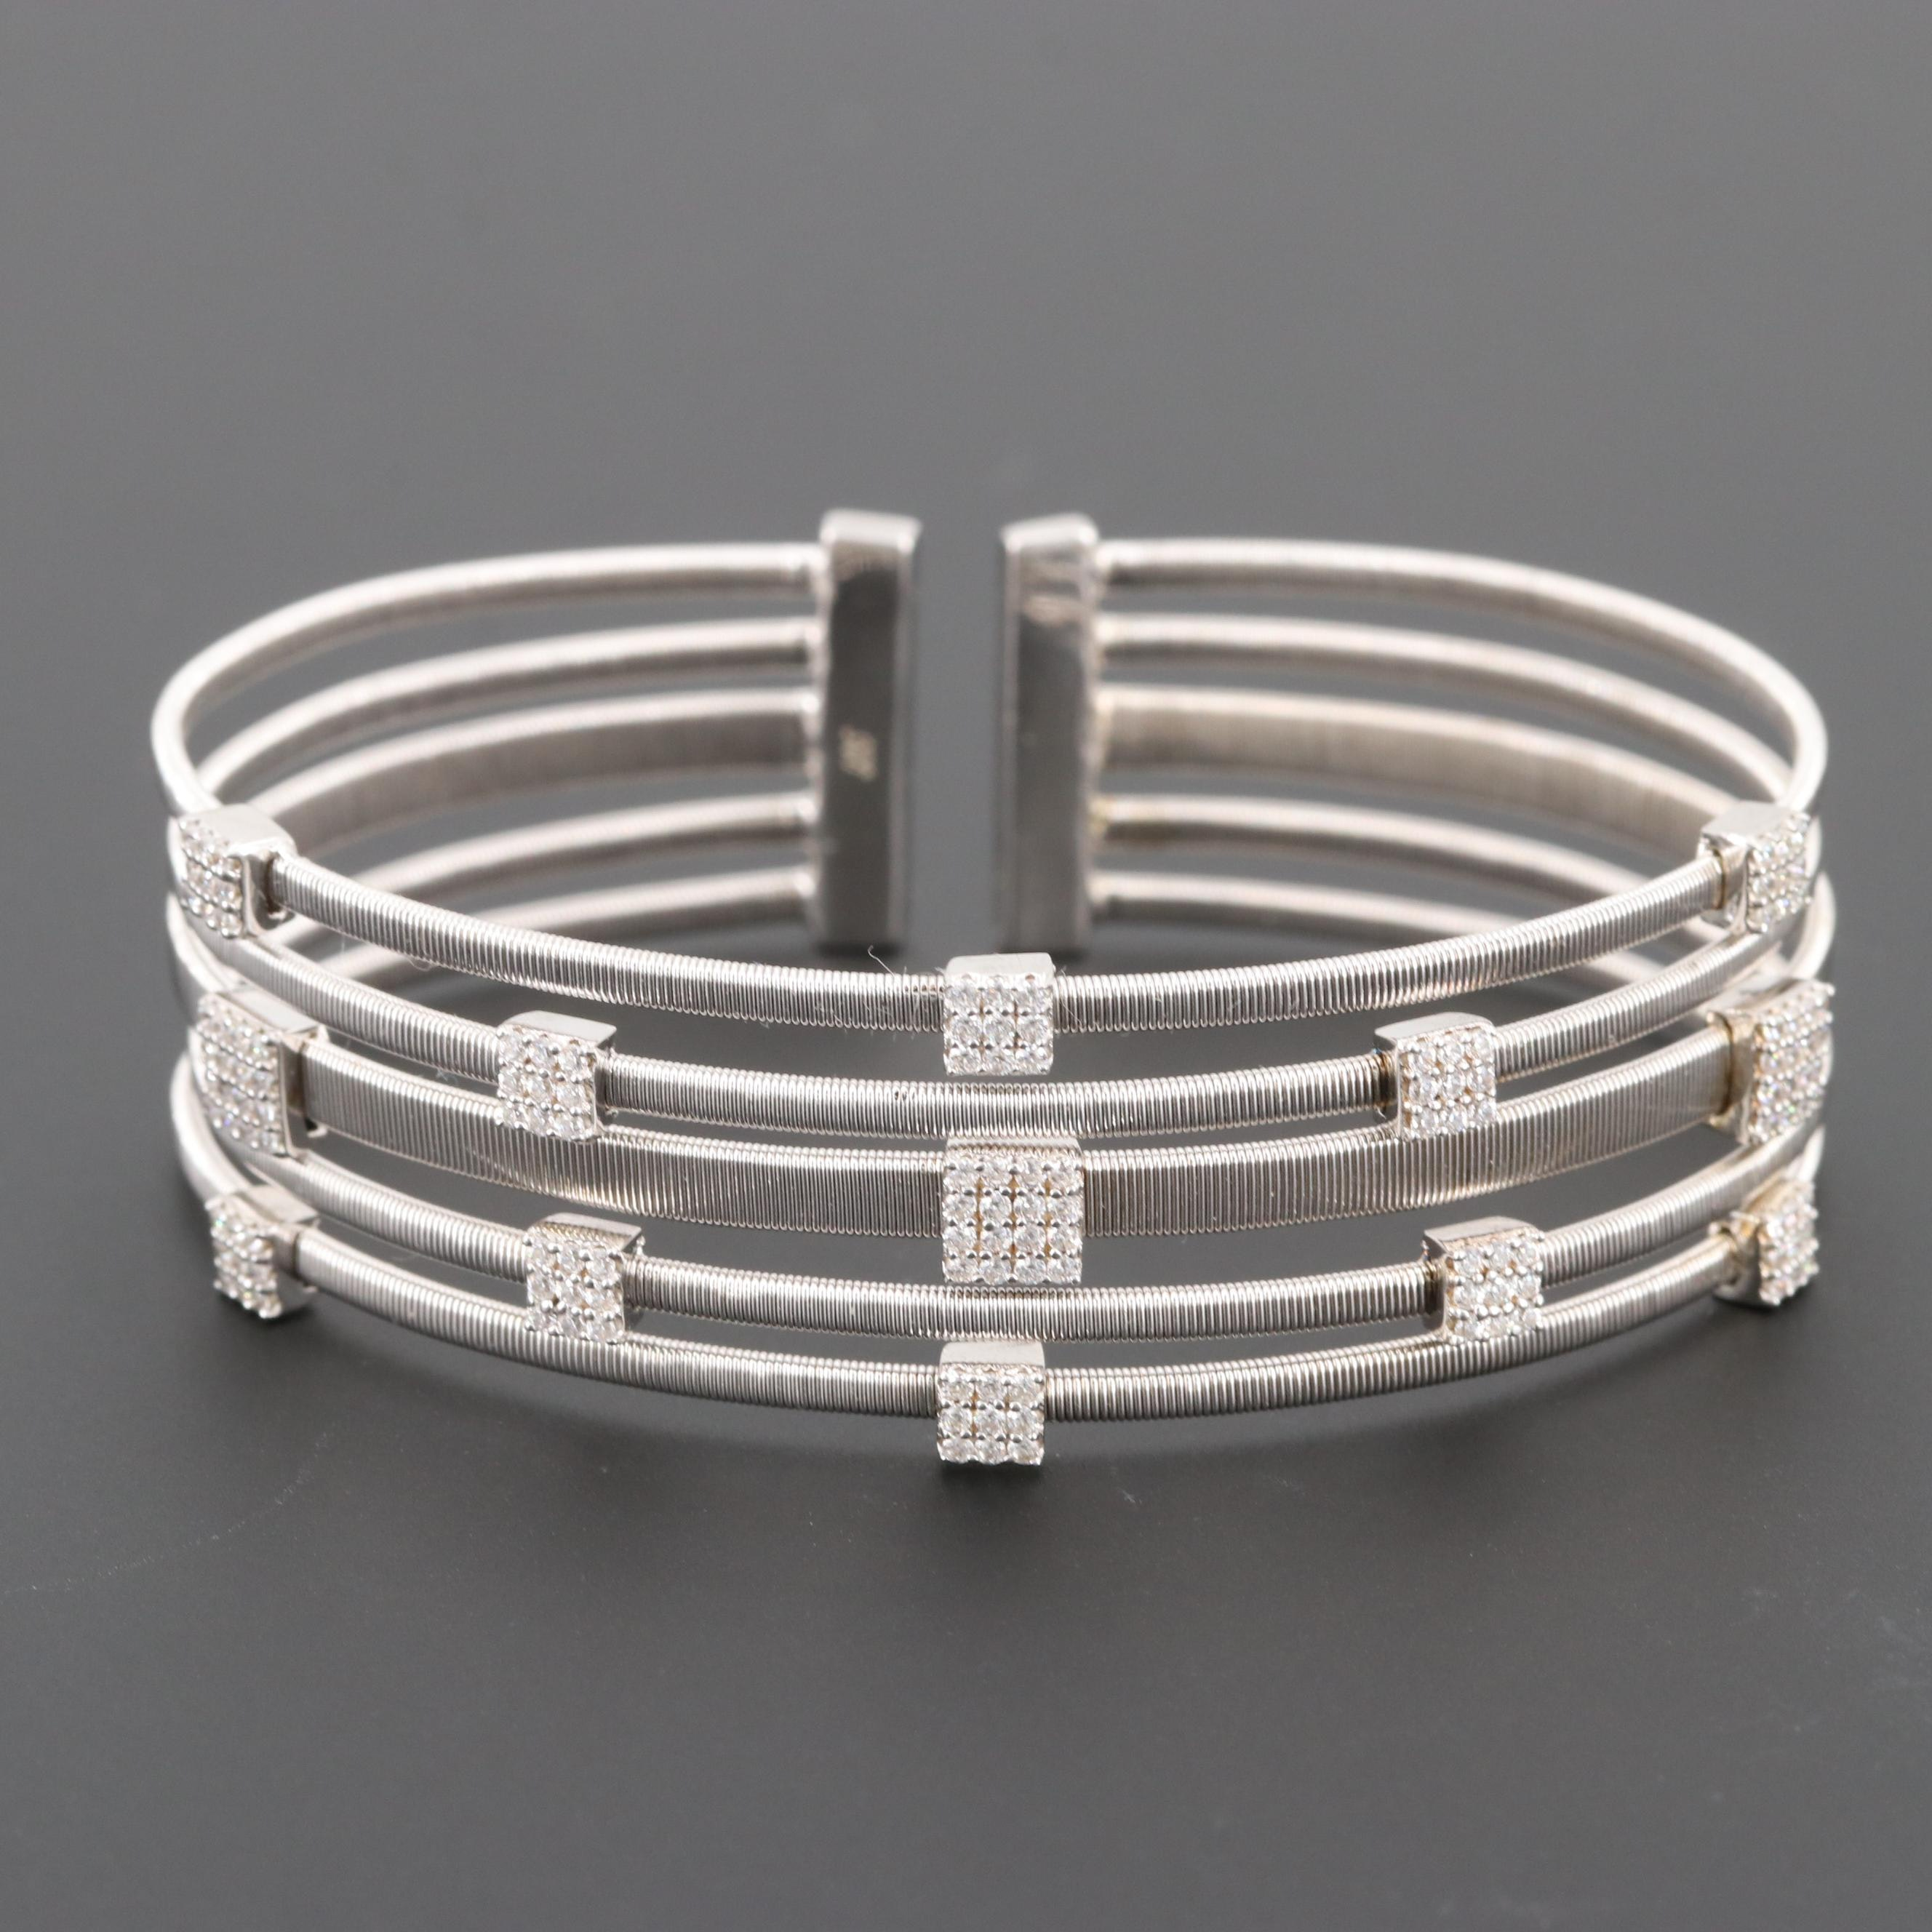 Sterling Silver Multi Chain Cuff Bracelet with Cubic Zirconia Stations